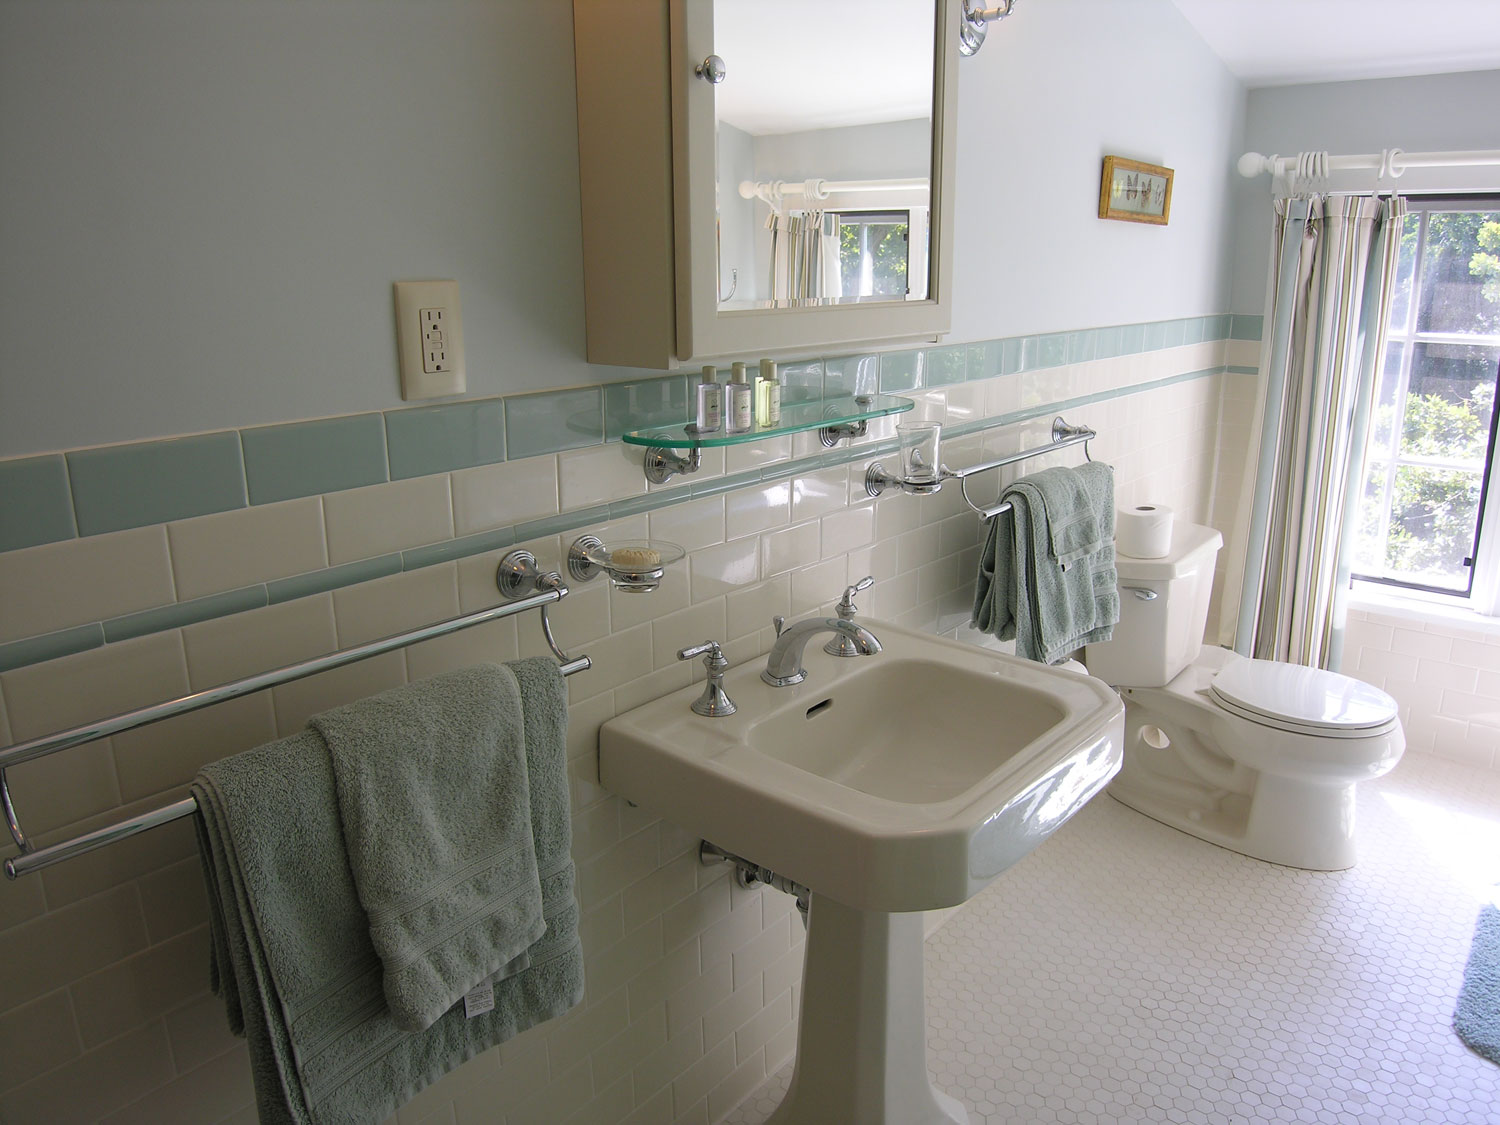 Sgs interiors historical home gets a bathroom remodel for Historic bathroom remodel